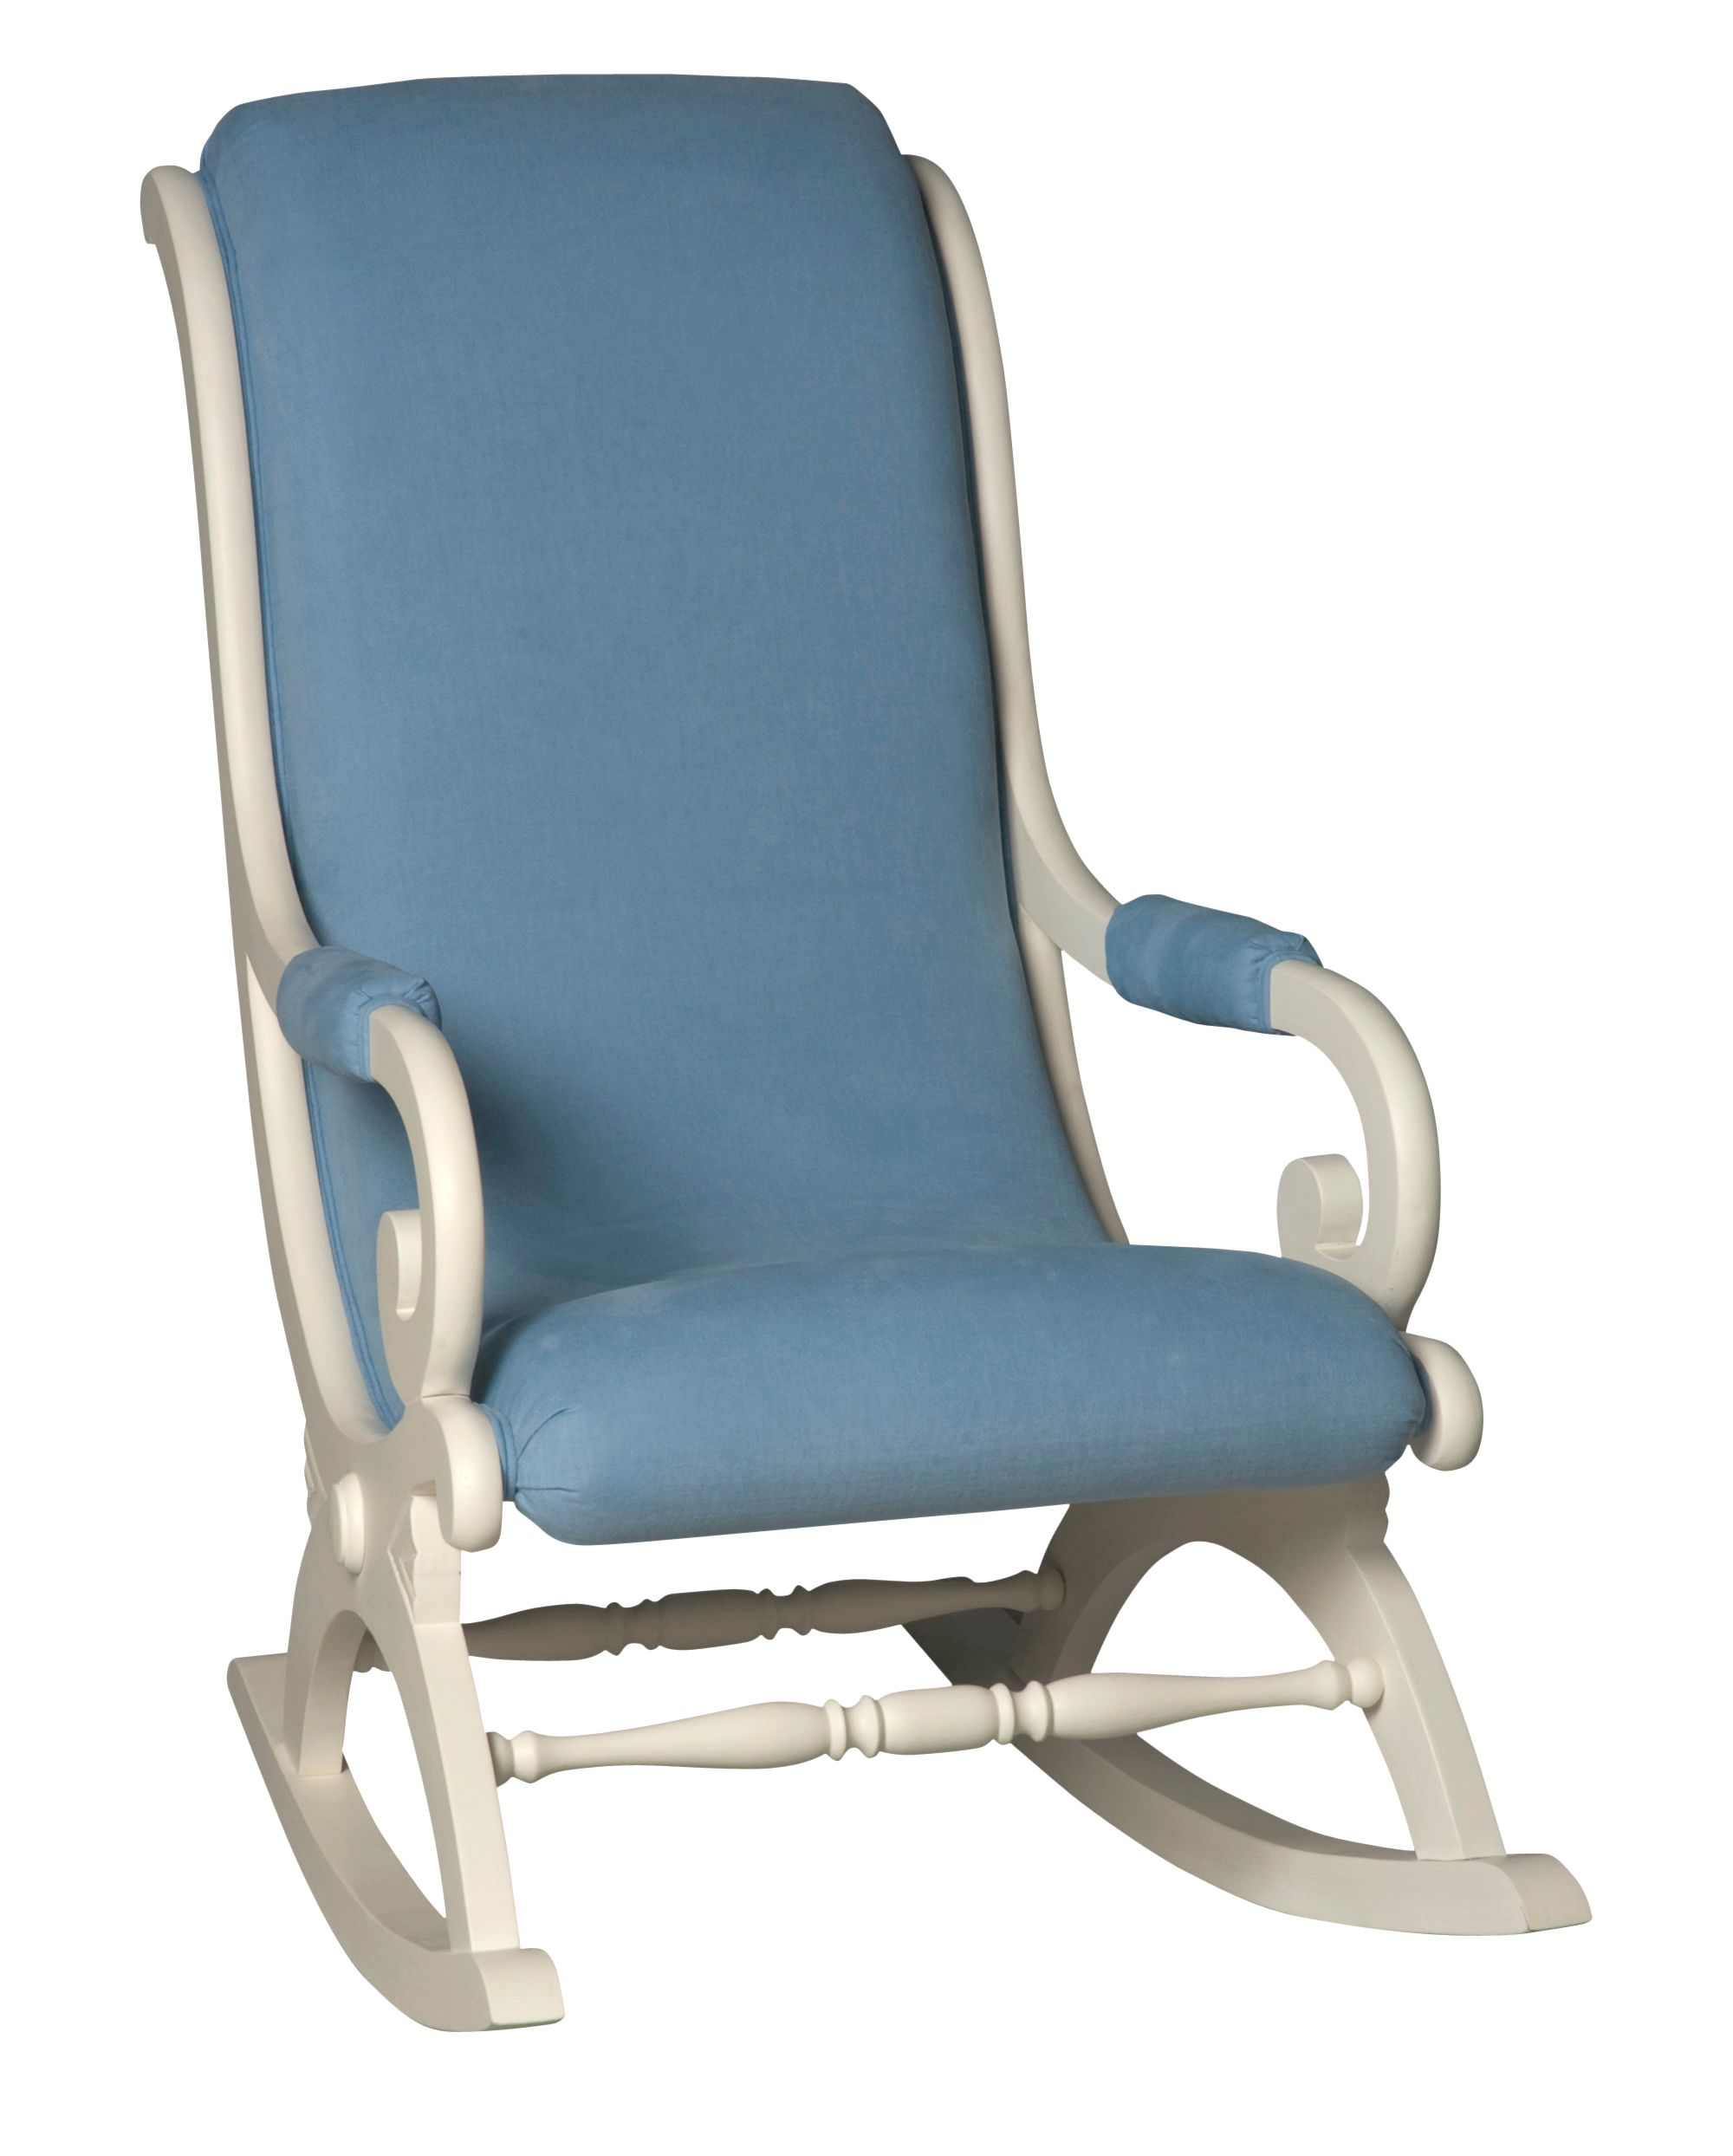 Looking For Rocking Chairs Buy Cheap Classic Rocking Chair Compare Products Prices